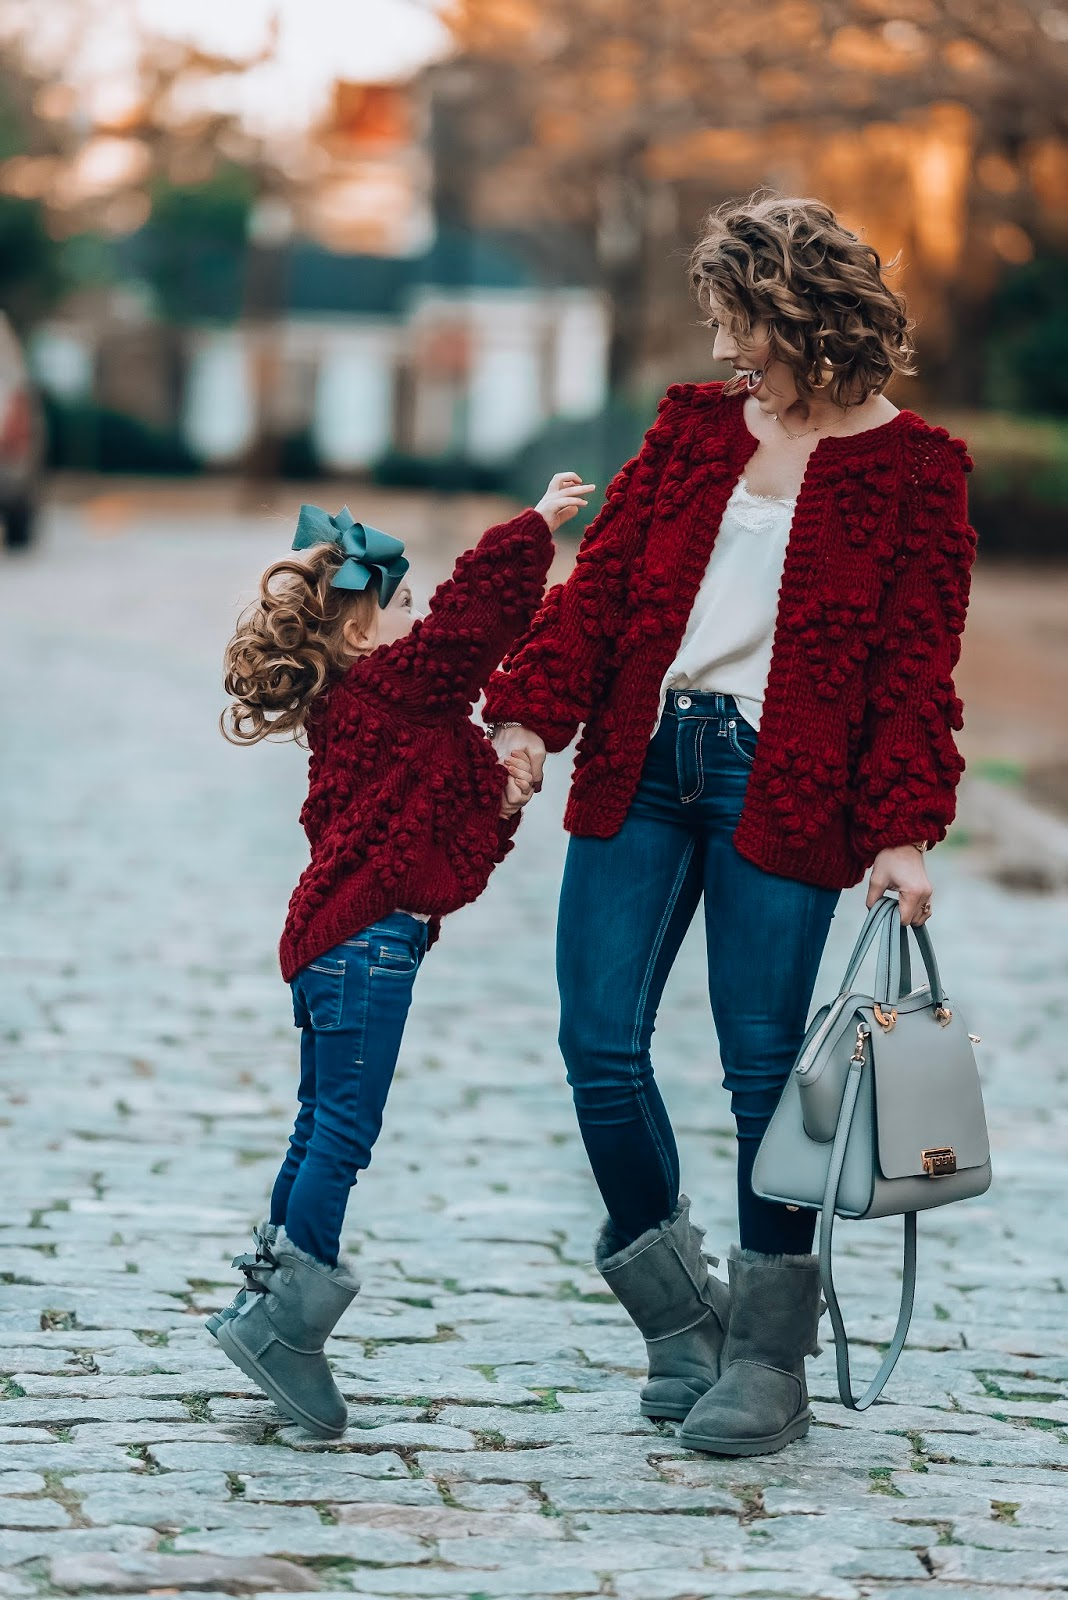 Mommy & Me Burgundy Pom Pom Heart Cardigans - Something Delightful Blog